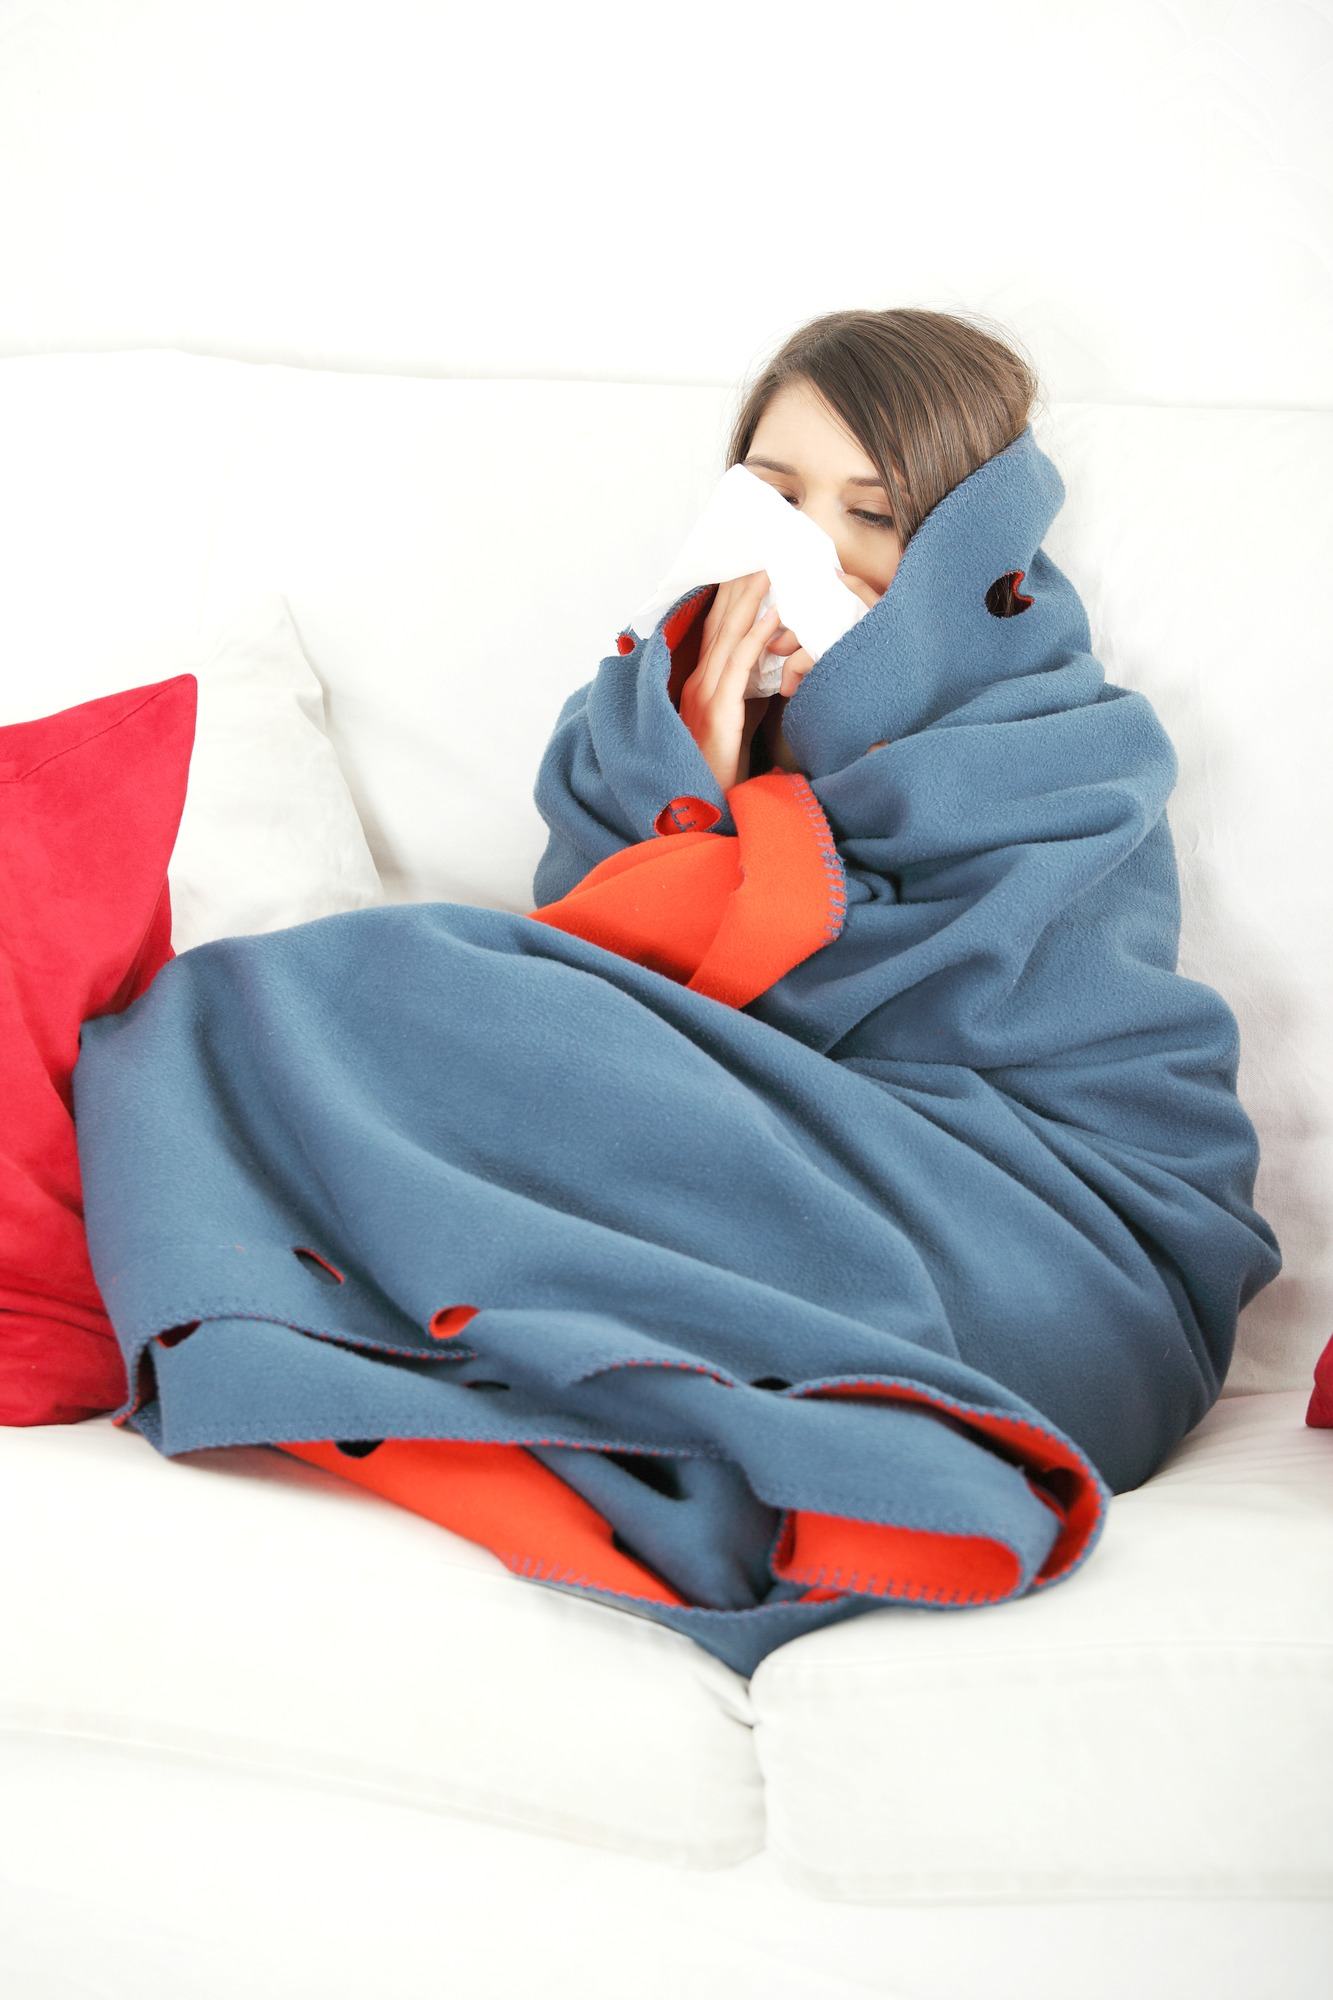 There's no denying that the winter months are here to stay for a little while. Here are 7 ways to protect yourself from the flu this year.